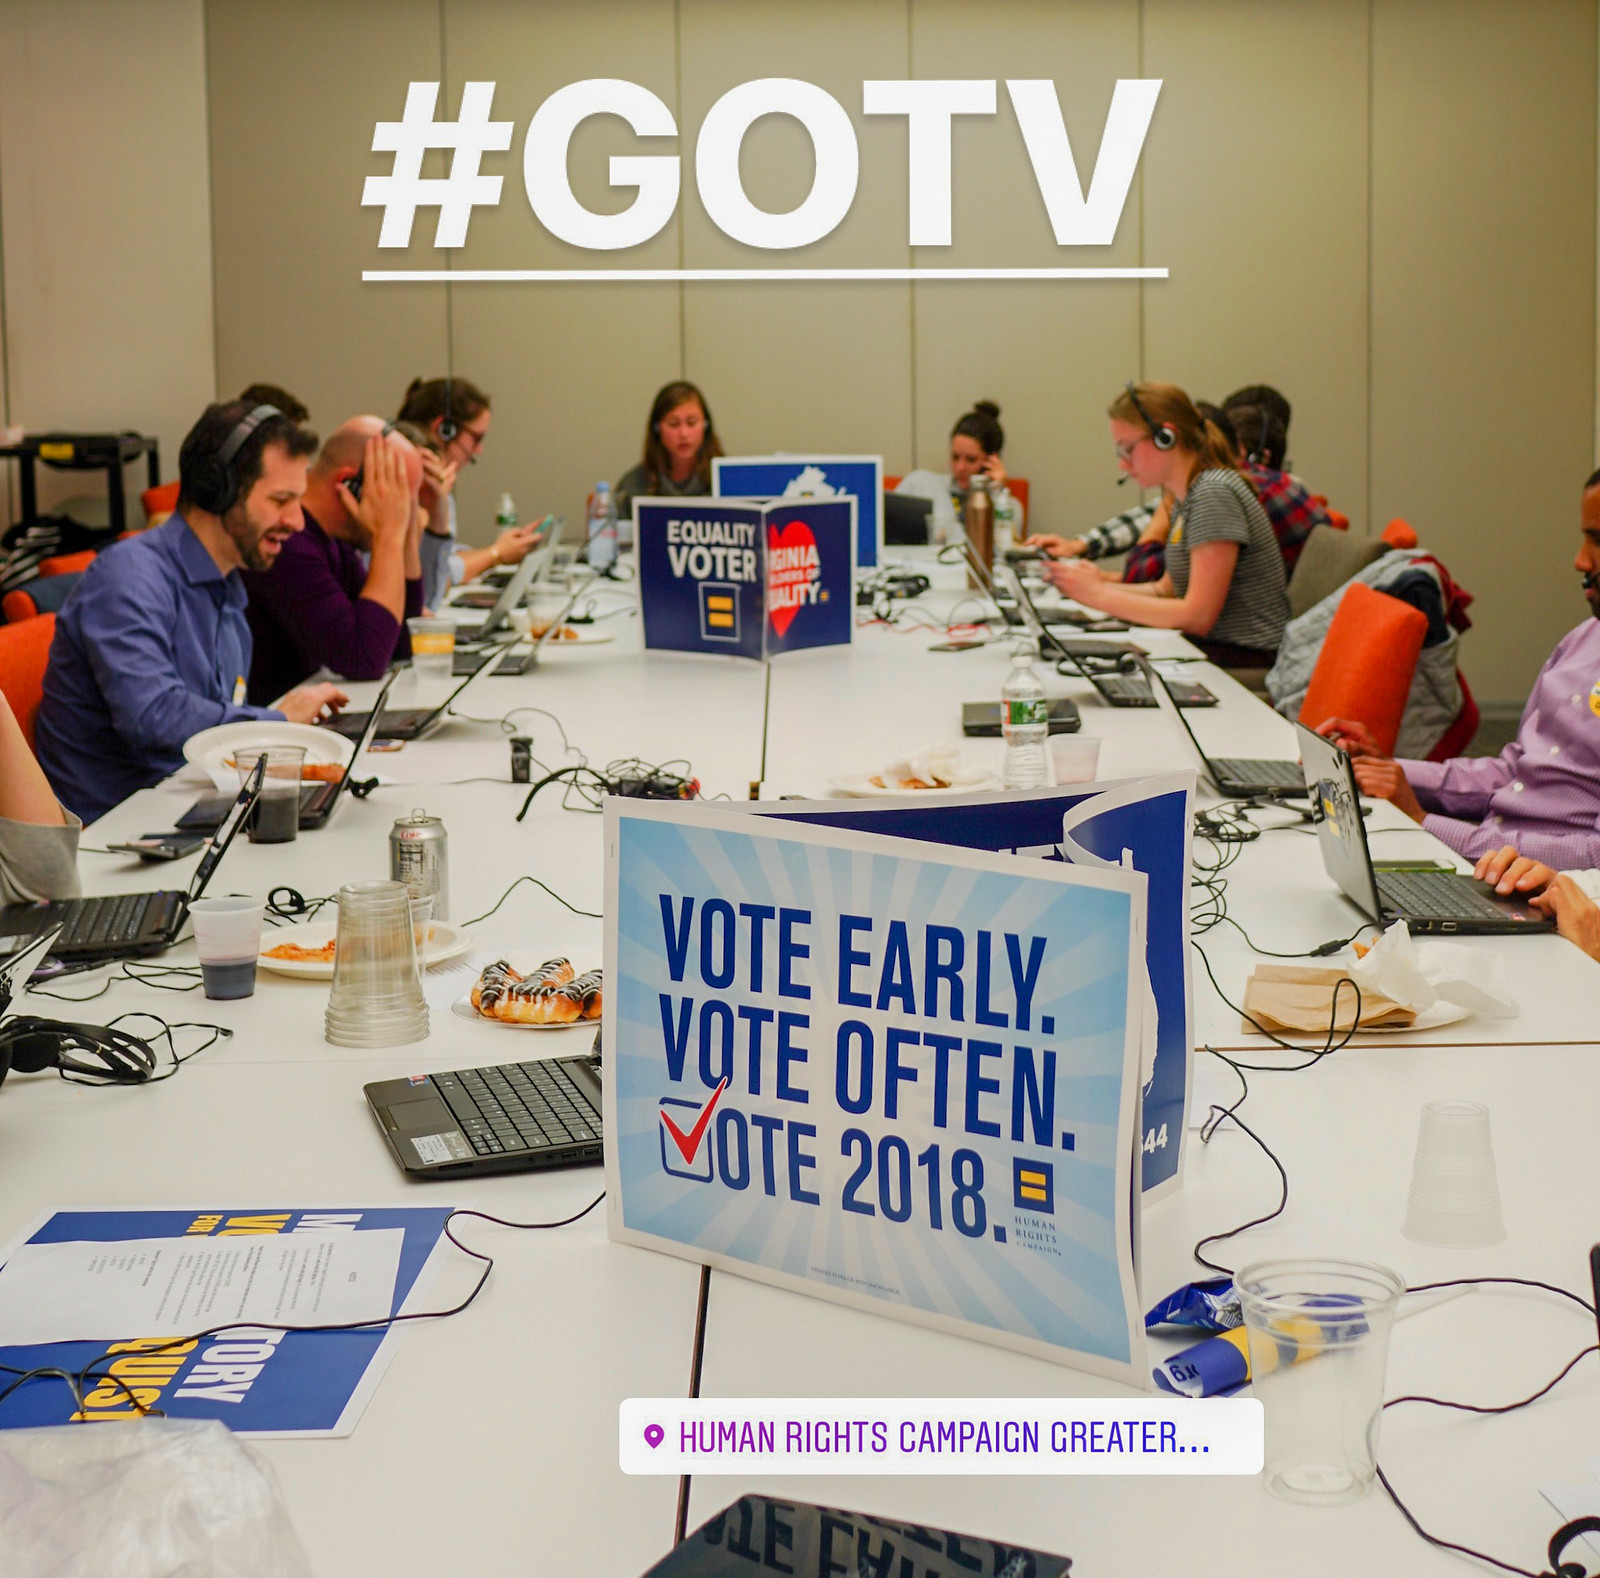 2018.11.05 Get Out The Vote GOTV, Washington, DC USA 2